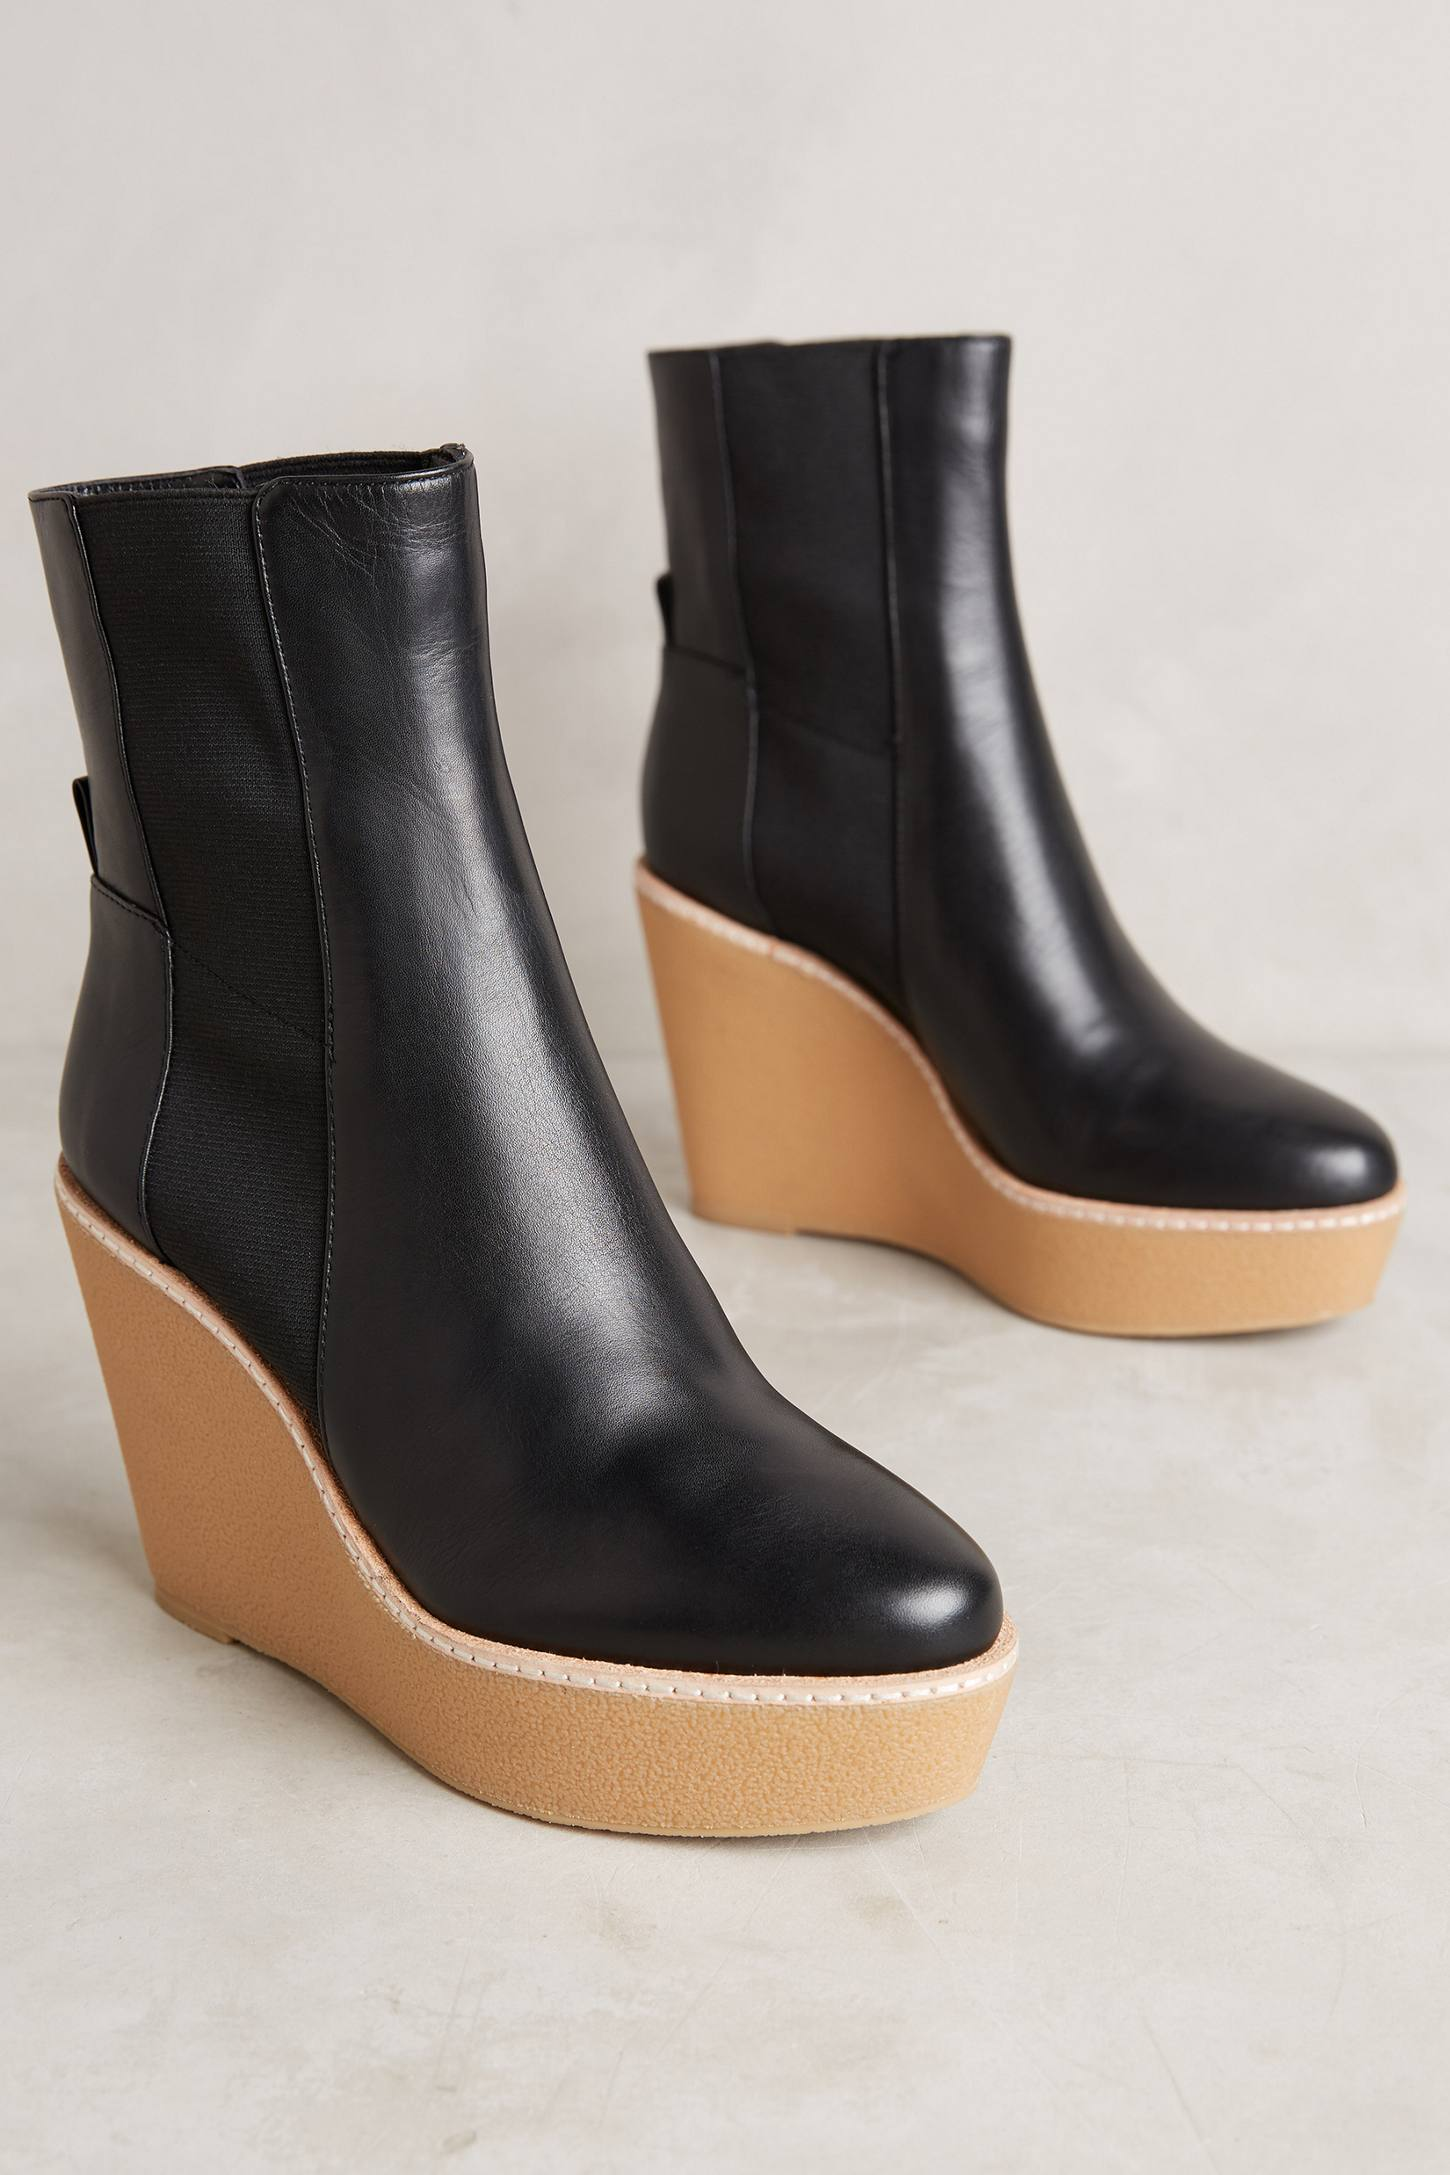 Derek Lam 10 Crosby Sandy Wedge Boots